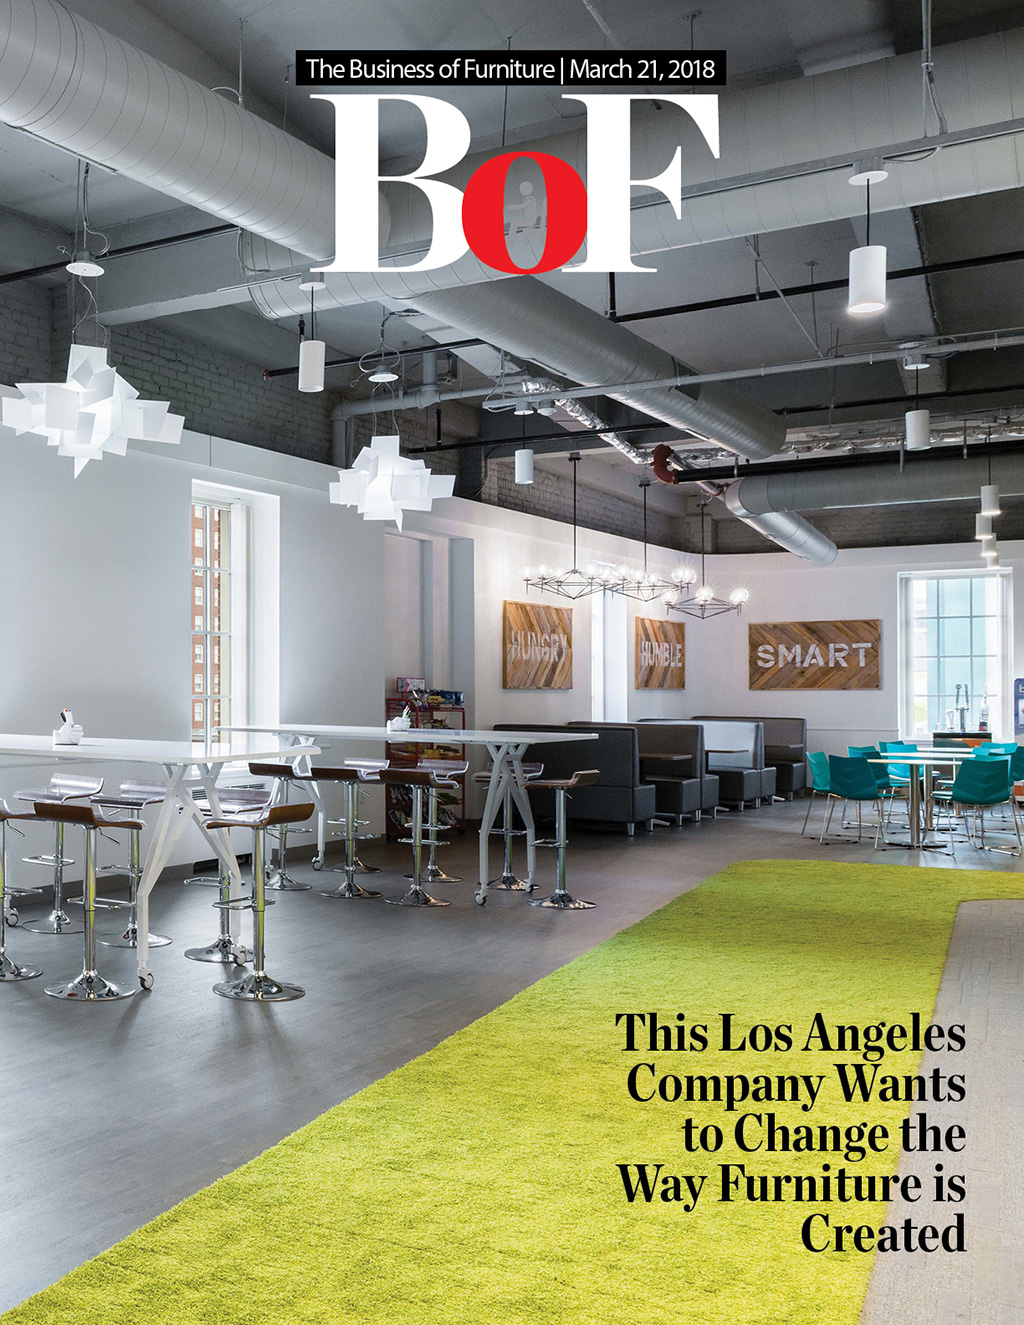 a291e39b7c17 Bellow Press - Previous Editions of Workplaces Magazine and The ...